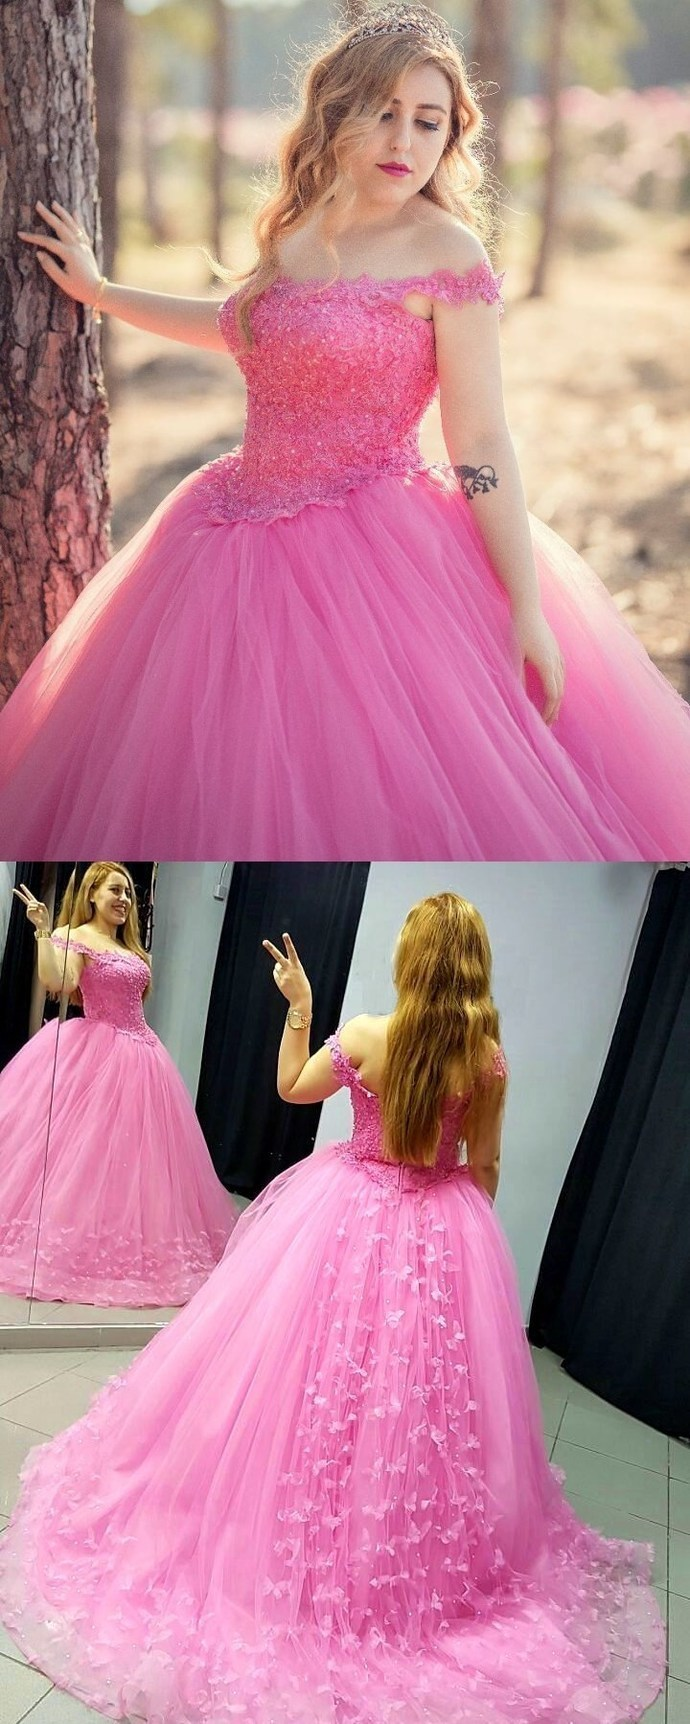 Pink Appliqued Corset Ball Gown Prom Dresses Q6699